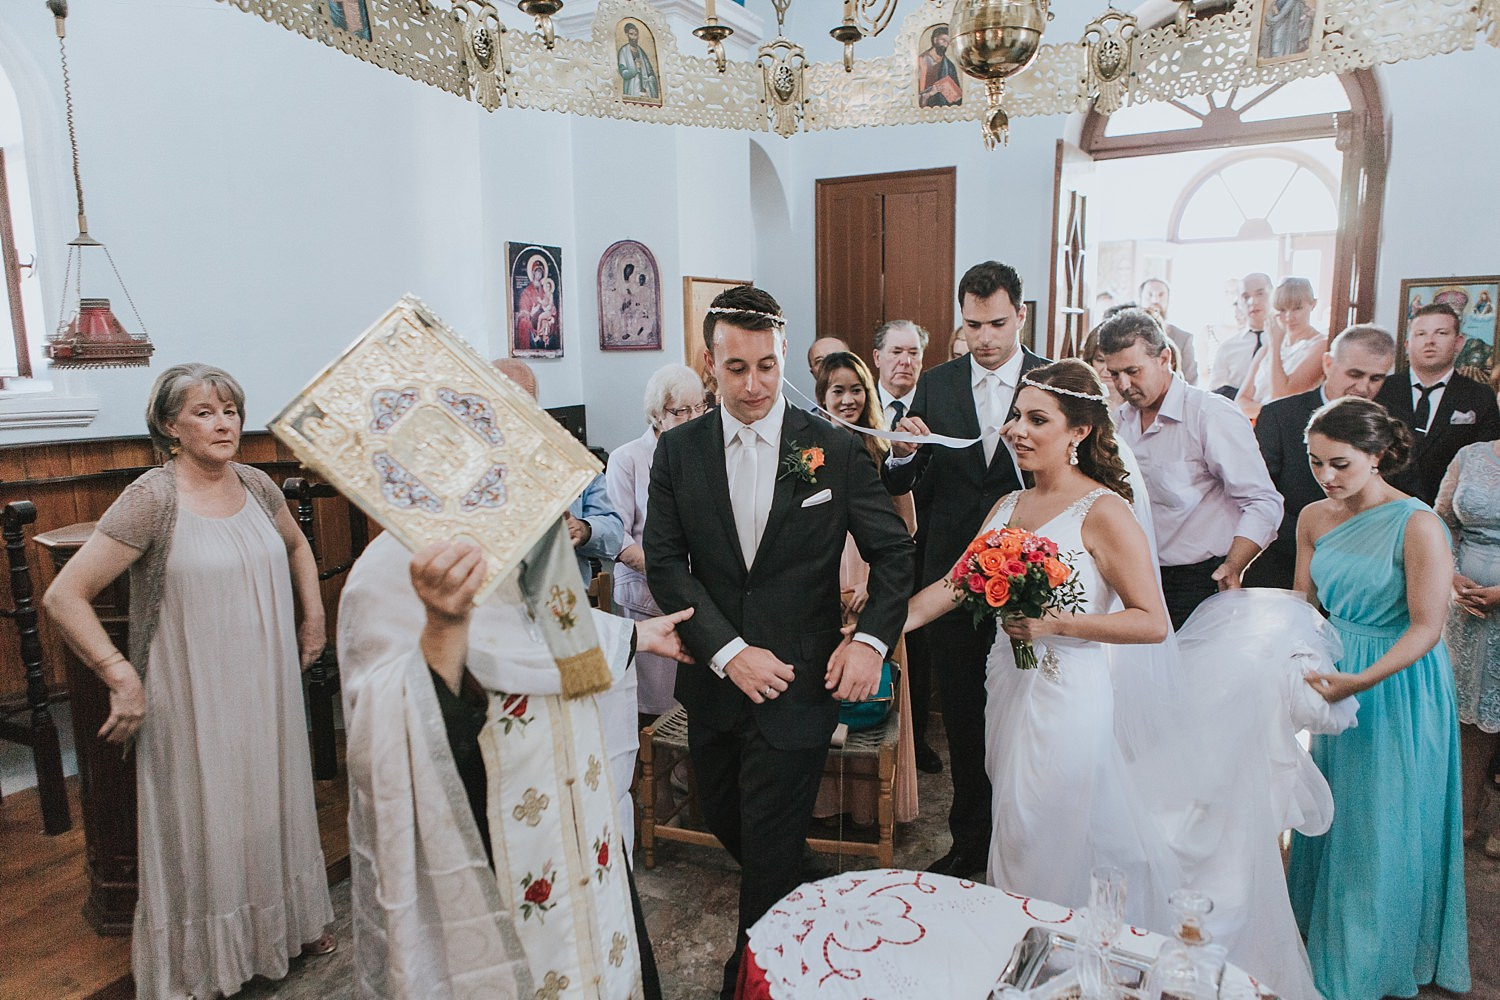 creative wedding photos by jonathan david